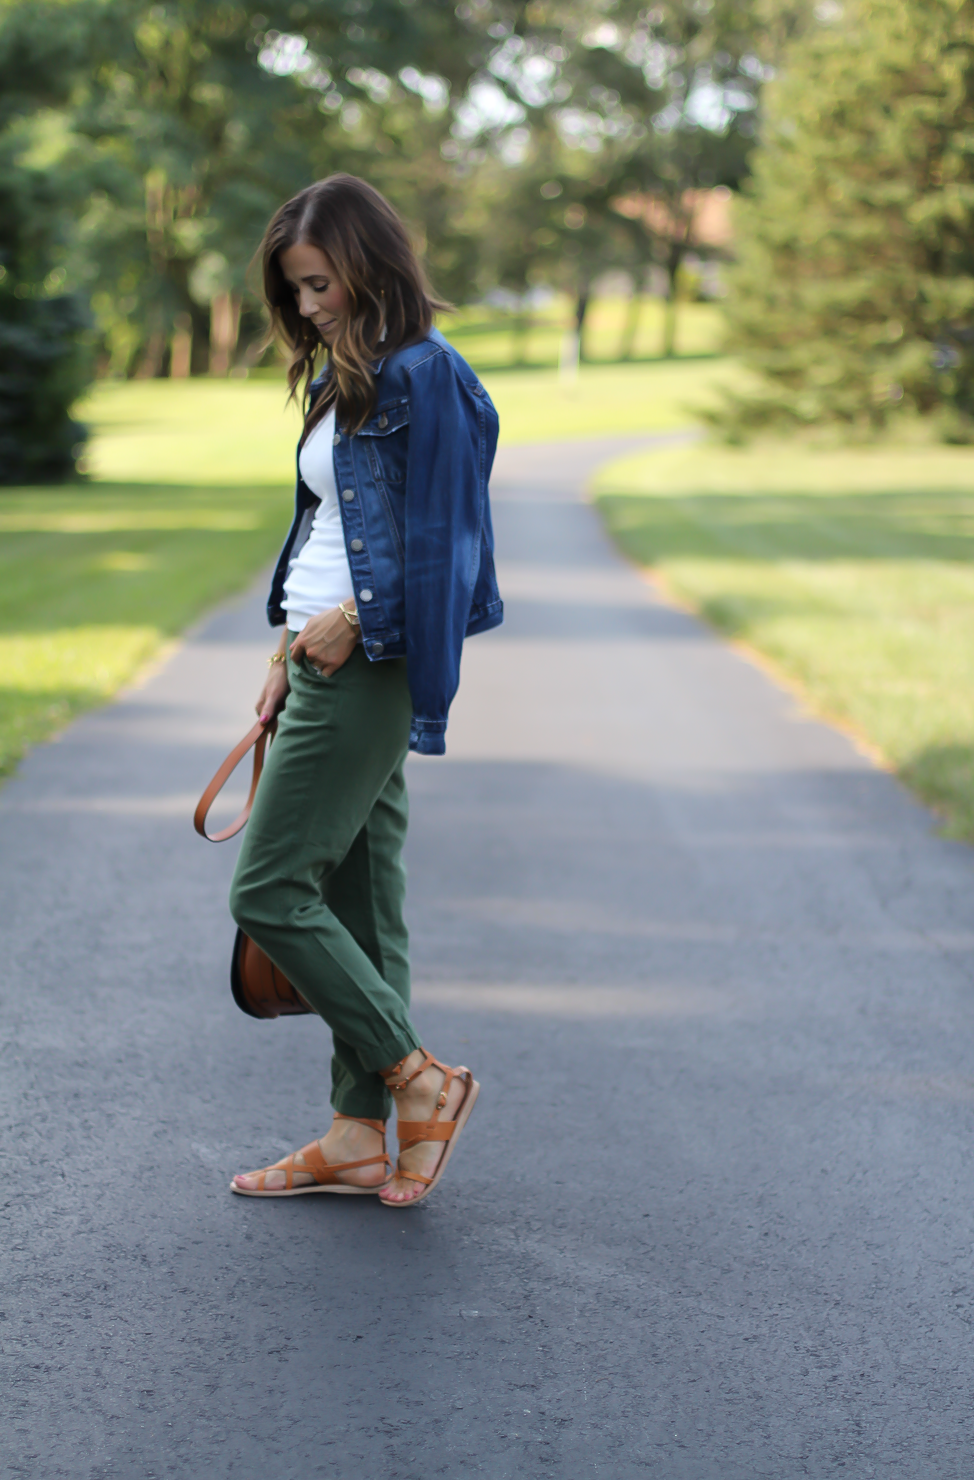 Army Green Joggers, White Sleeveless Shell Tee, Gladiator Sandals, Saddle Bag, J.Crew, tory Burch, Ancient Gladiator 2